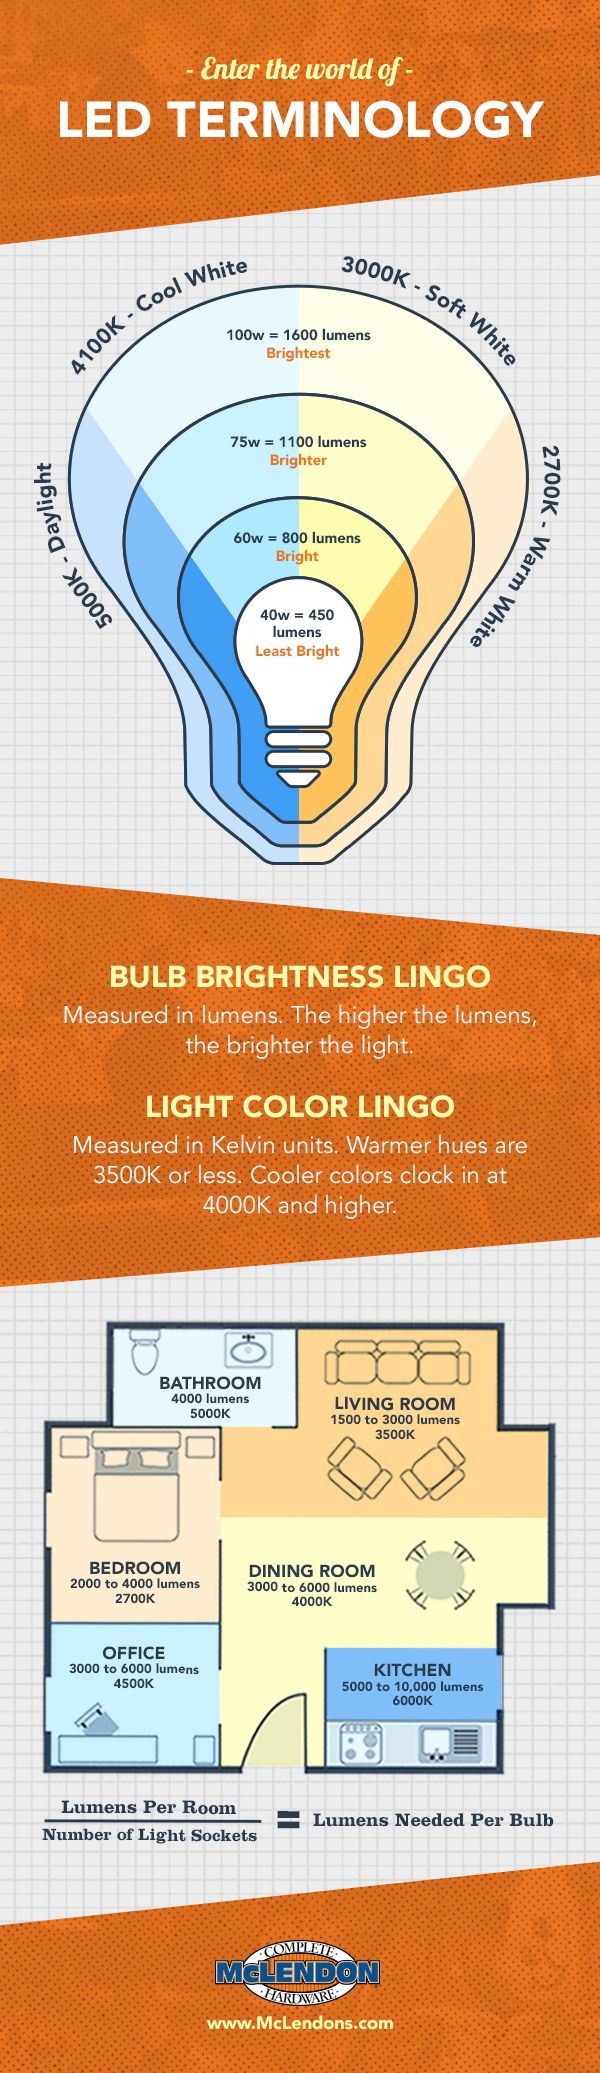 Led Light Bulbs A Case For Making The Switch Lighting Design Home Lighting Design Led Lights